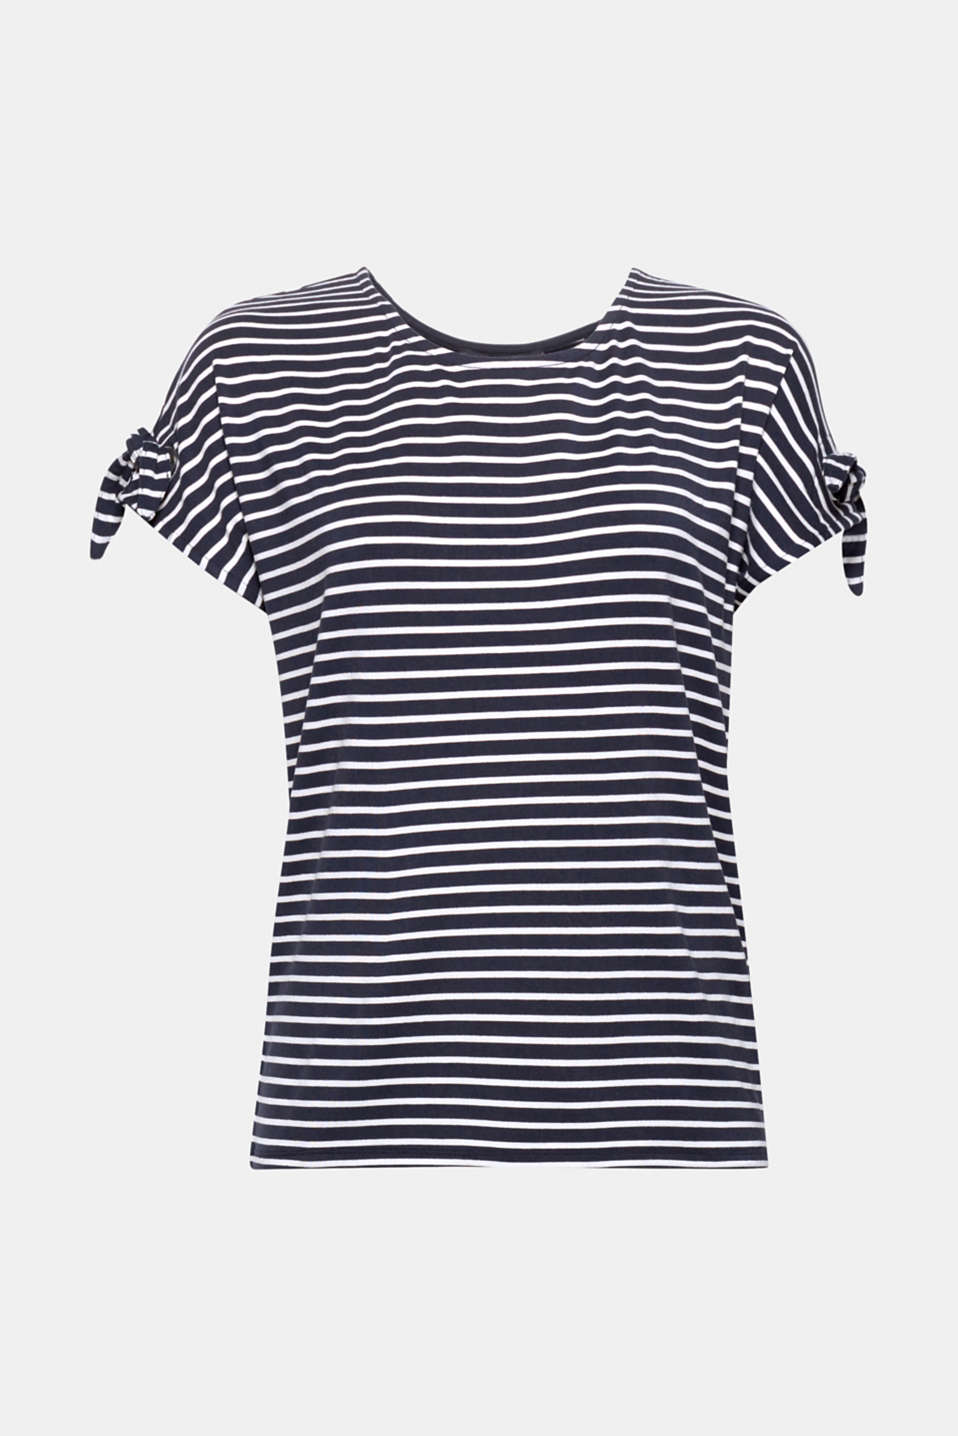 Fashionable stripes and decorative bows on the sleeves give this soft, versatile stretch top its pretty, sporty look!